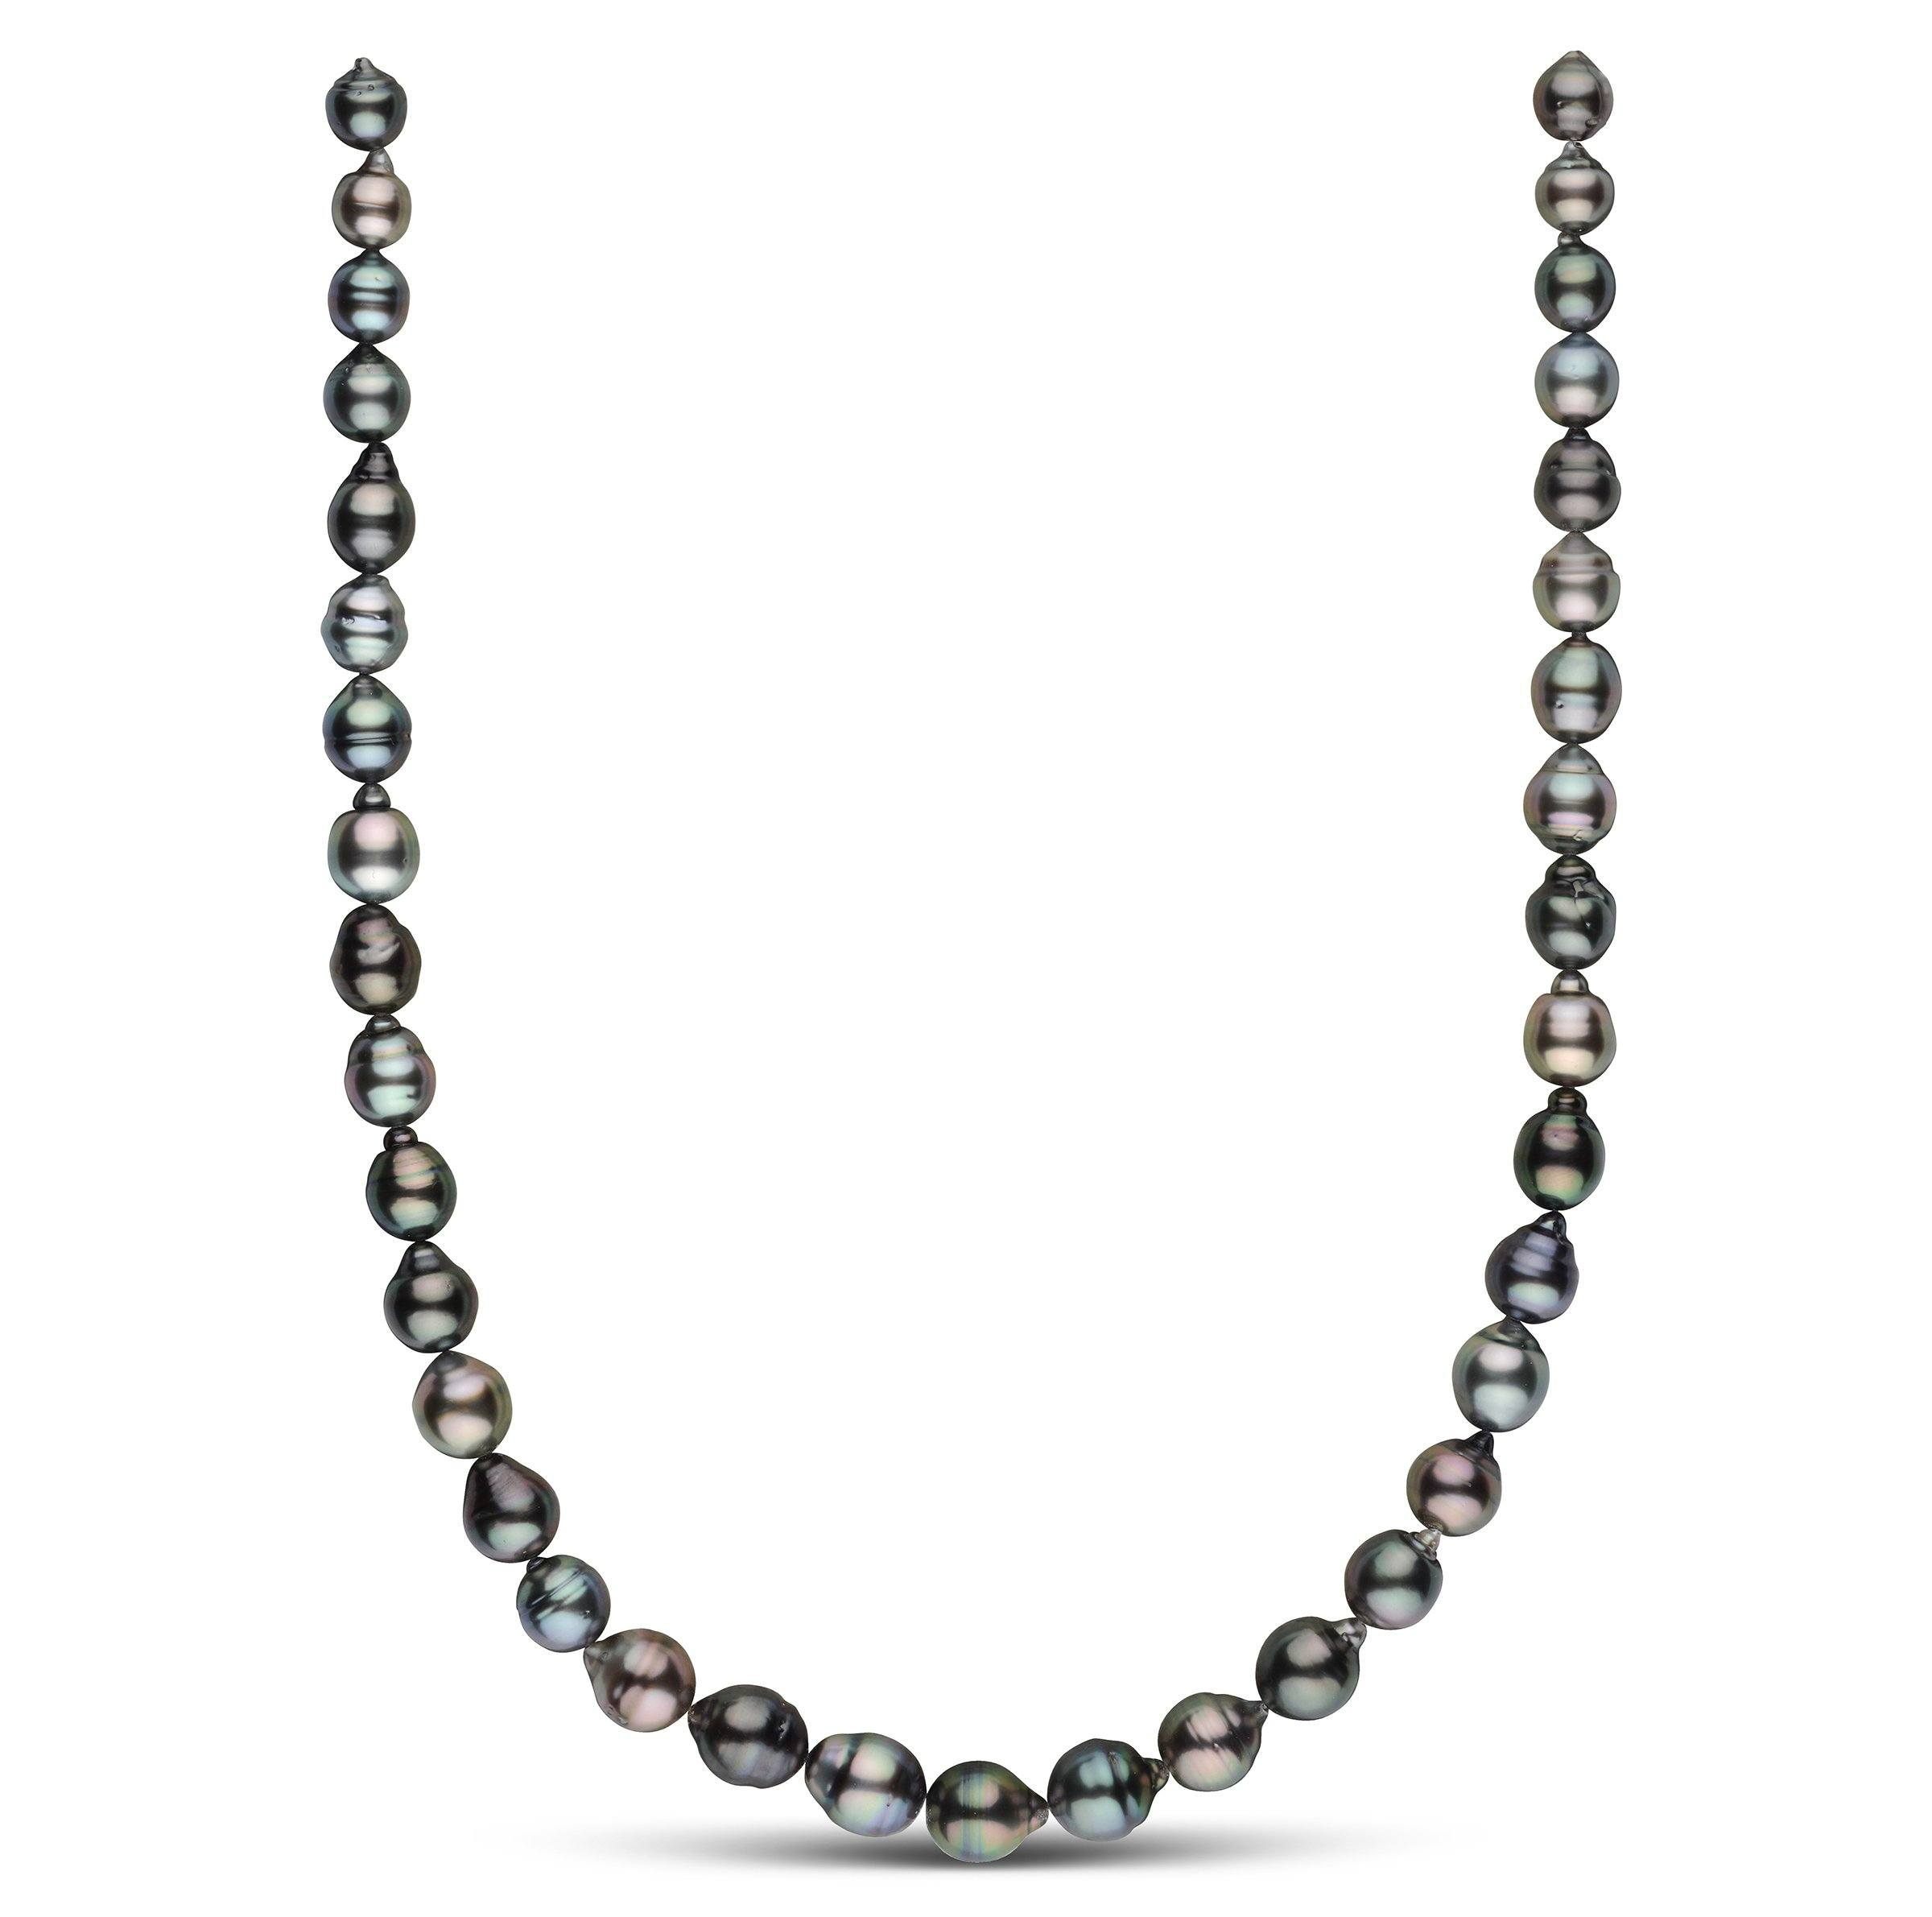 8.1-10.3 mm AAA Tahitian Baroque Pearl Necklace